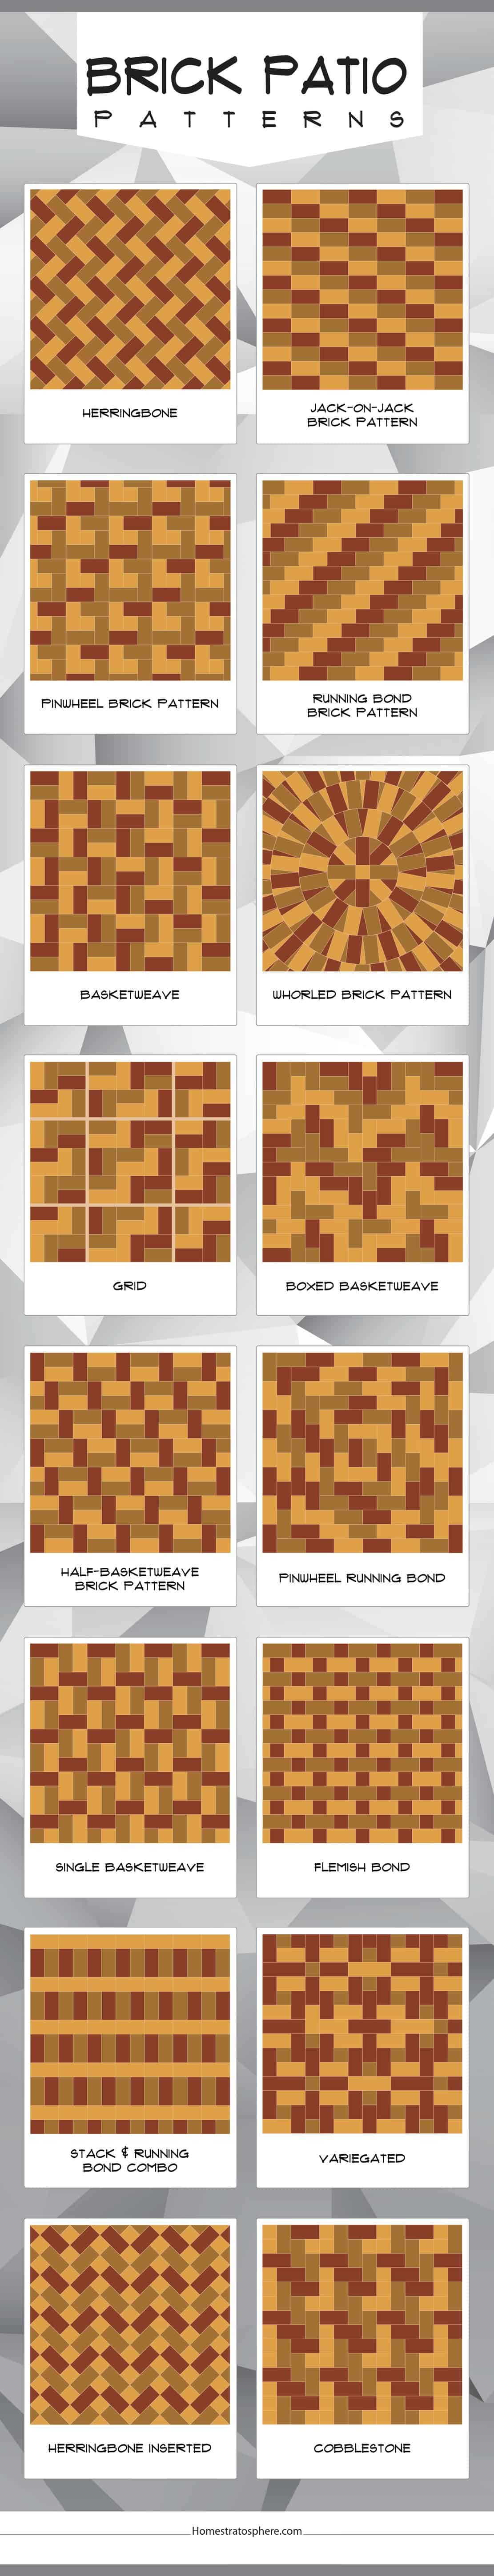 Brick patio patterns infographic - 50 Brick Patio Patterns, Designs And Ideas